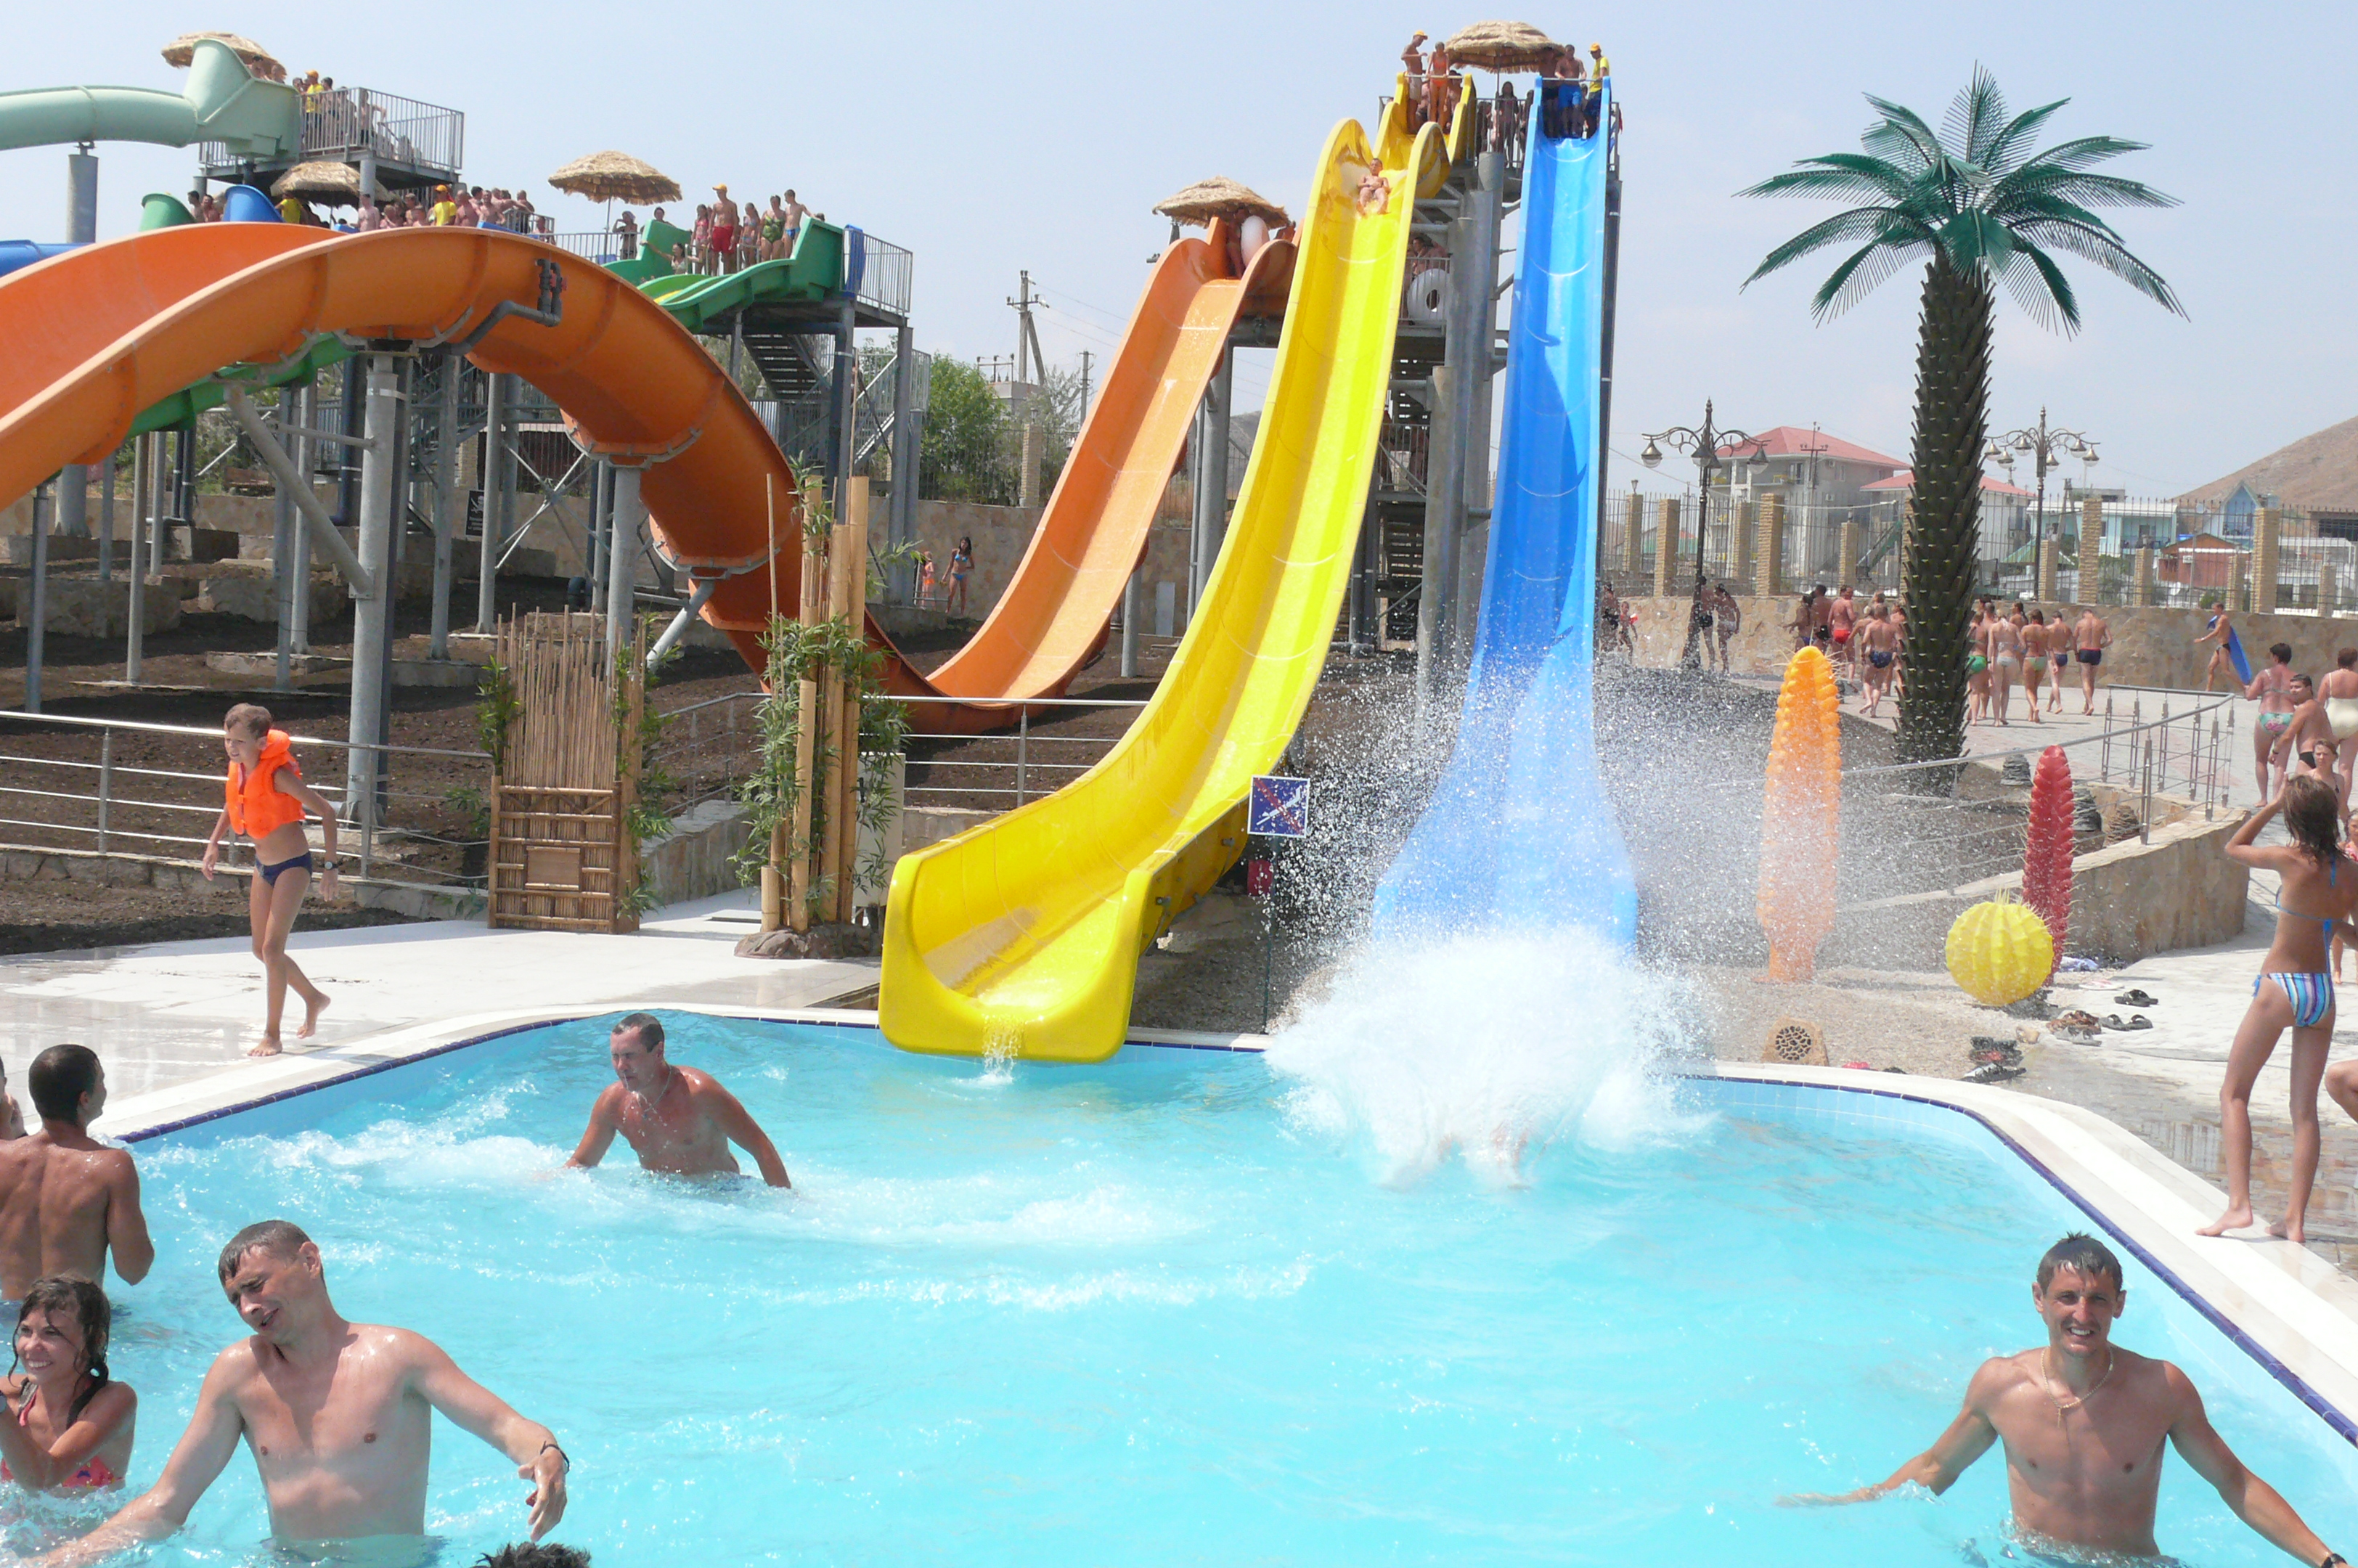 https://aquapark-koktebel.ru/wp-content/uploads/2020/04/Kamikadze1.jpg